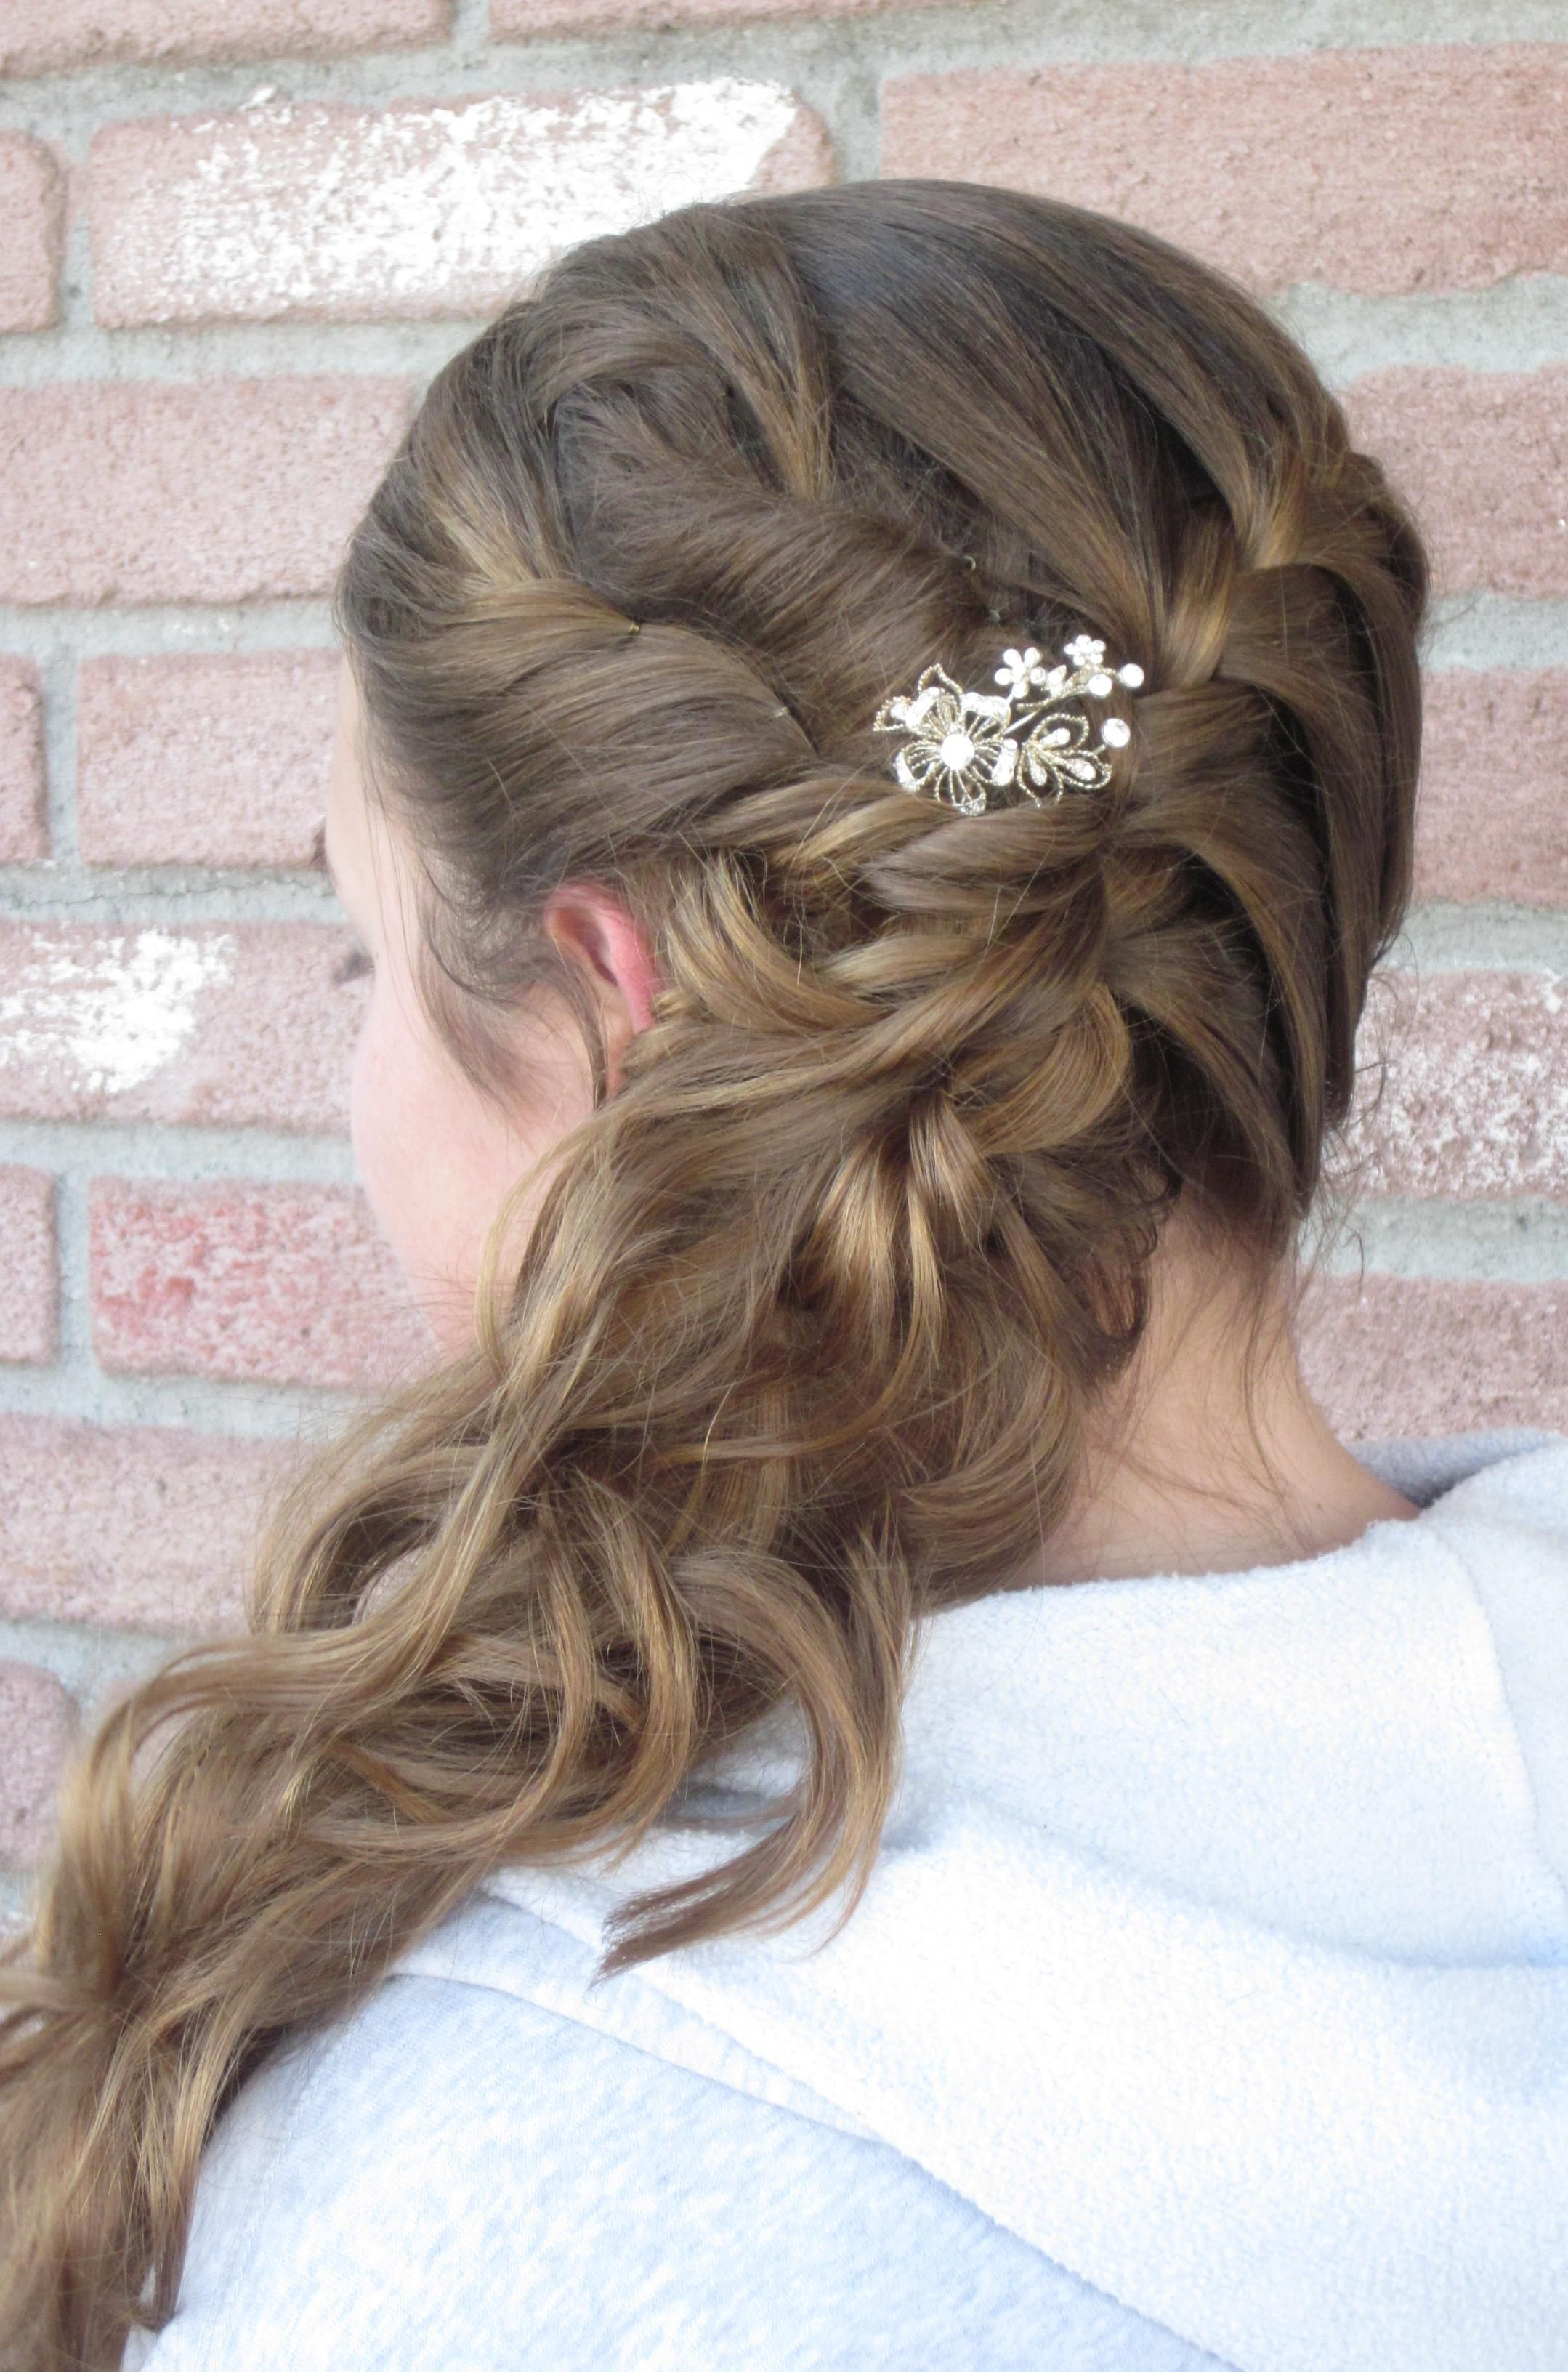 Special Occasions Prom Up Dos Curled Special Occasion Hairstyles Hair Styles Hair And Nail Salon